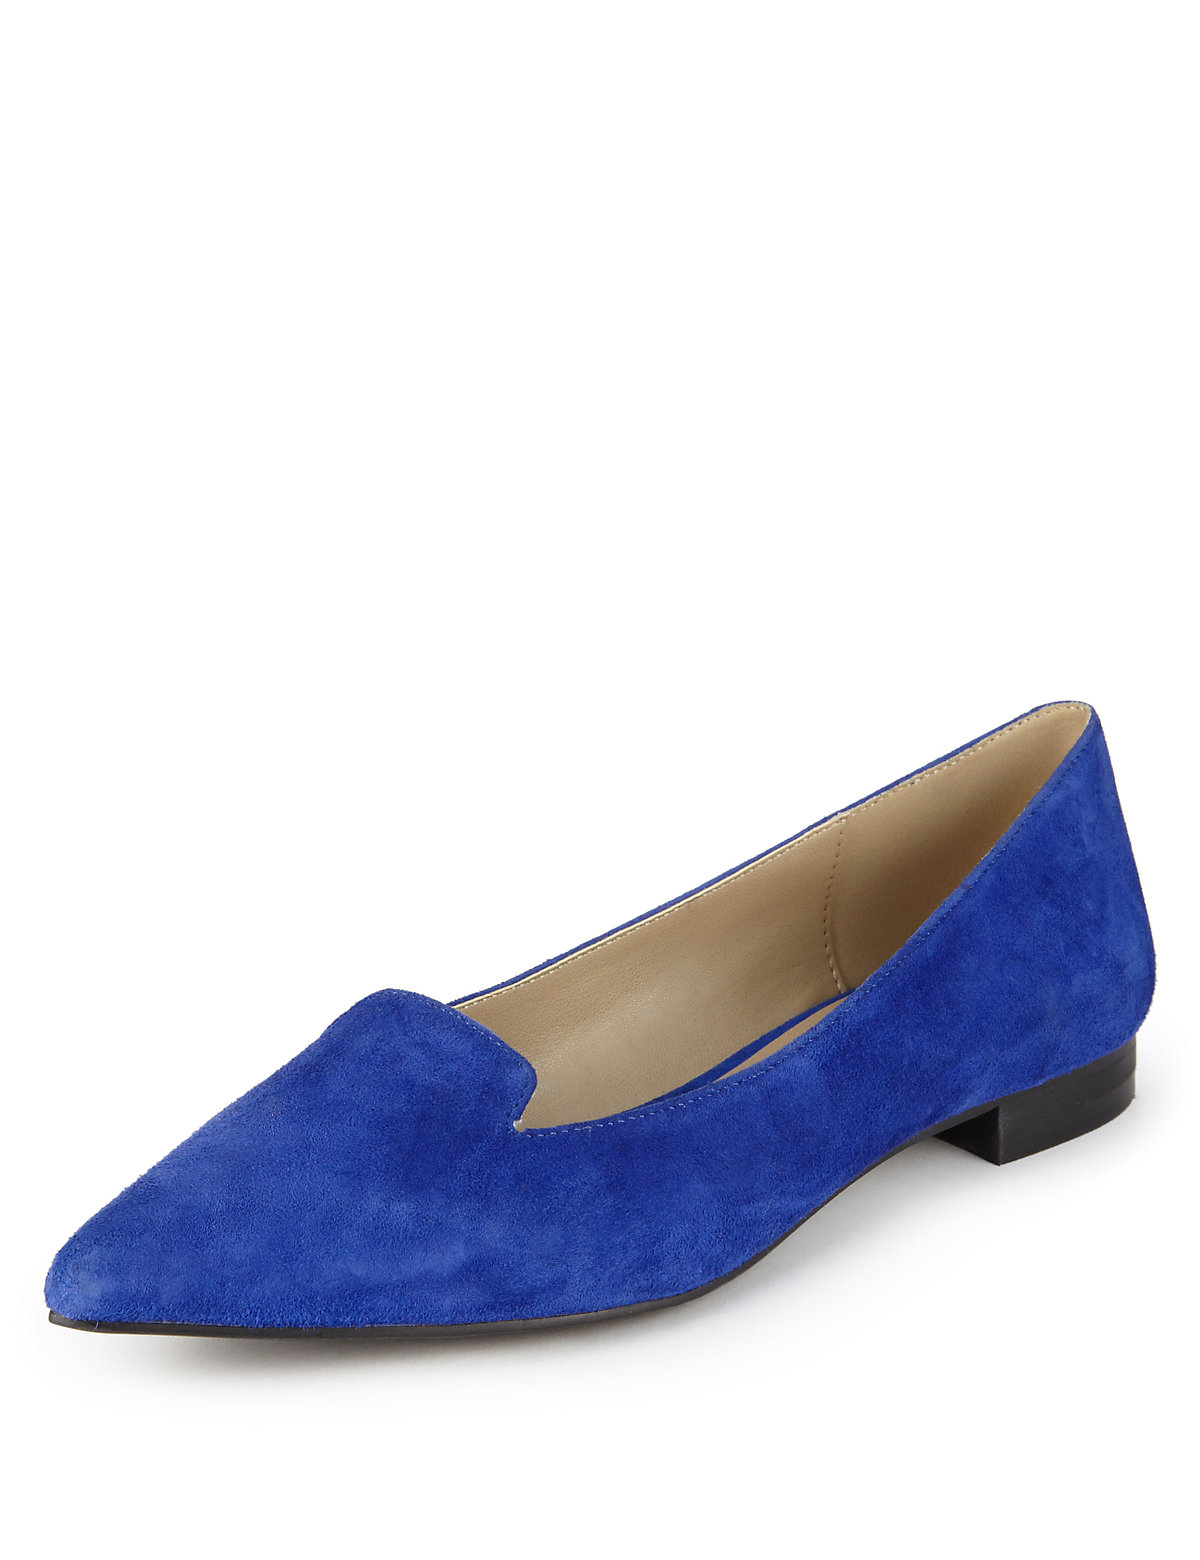 Suede Stain Away™ Albert Flat Pointed Toe Pumps with Insolia Flex®